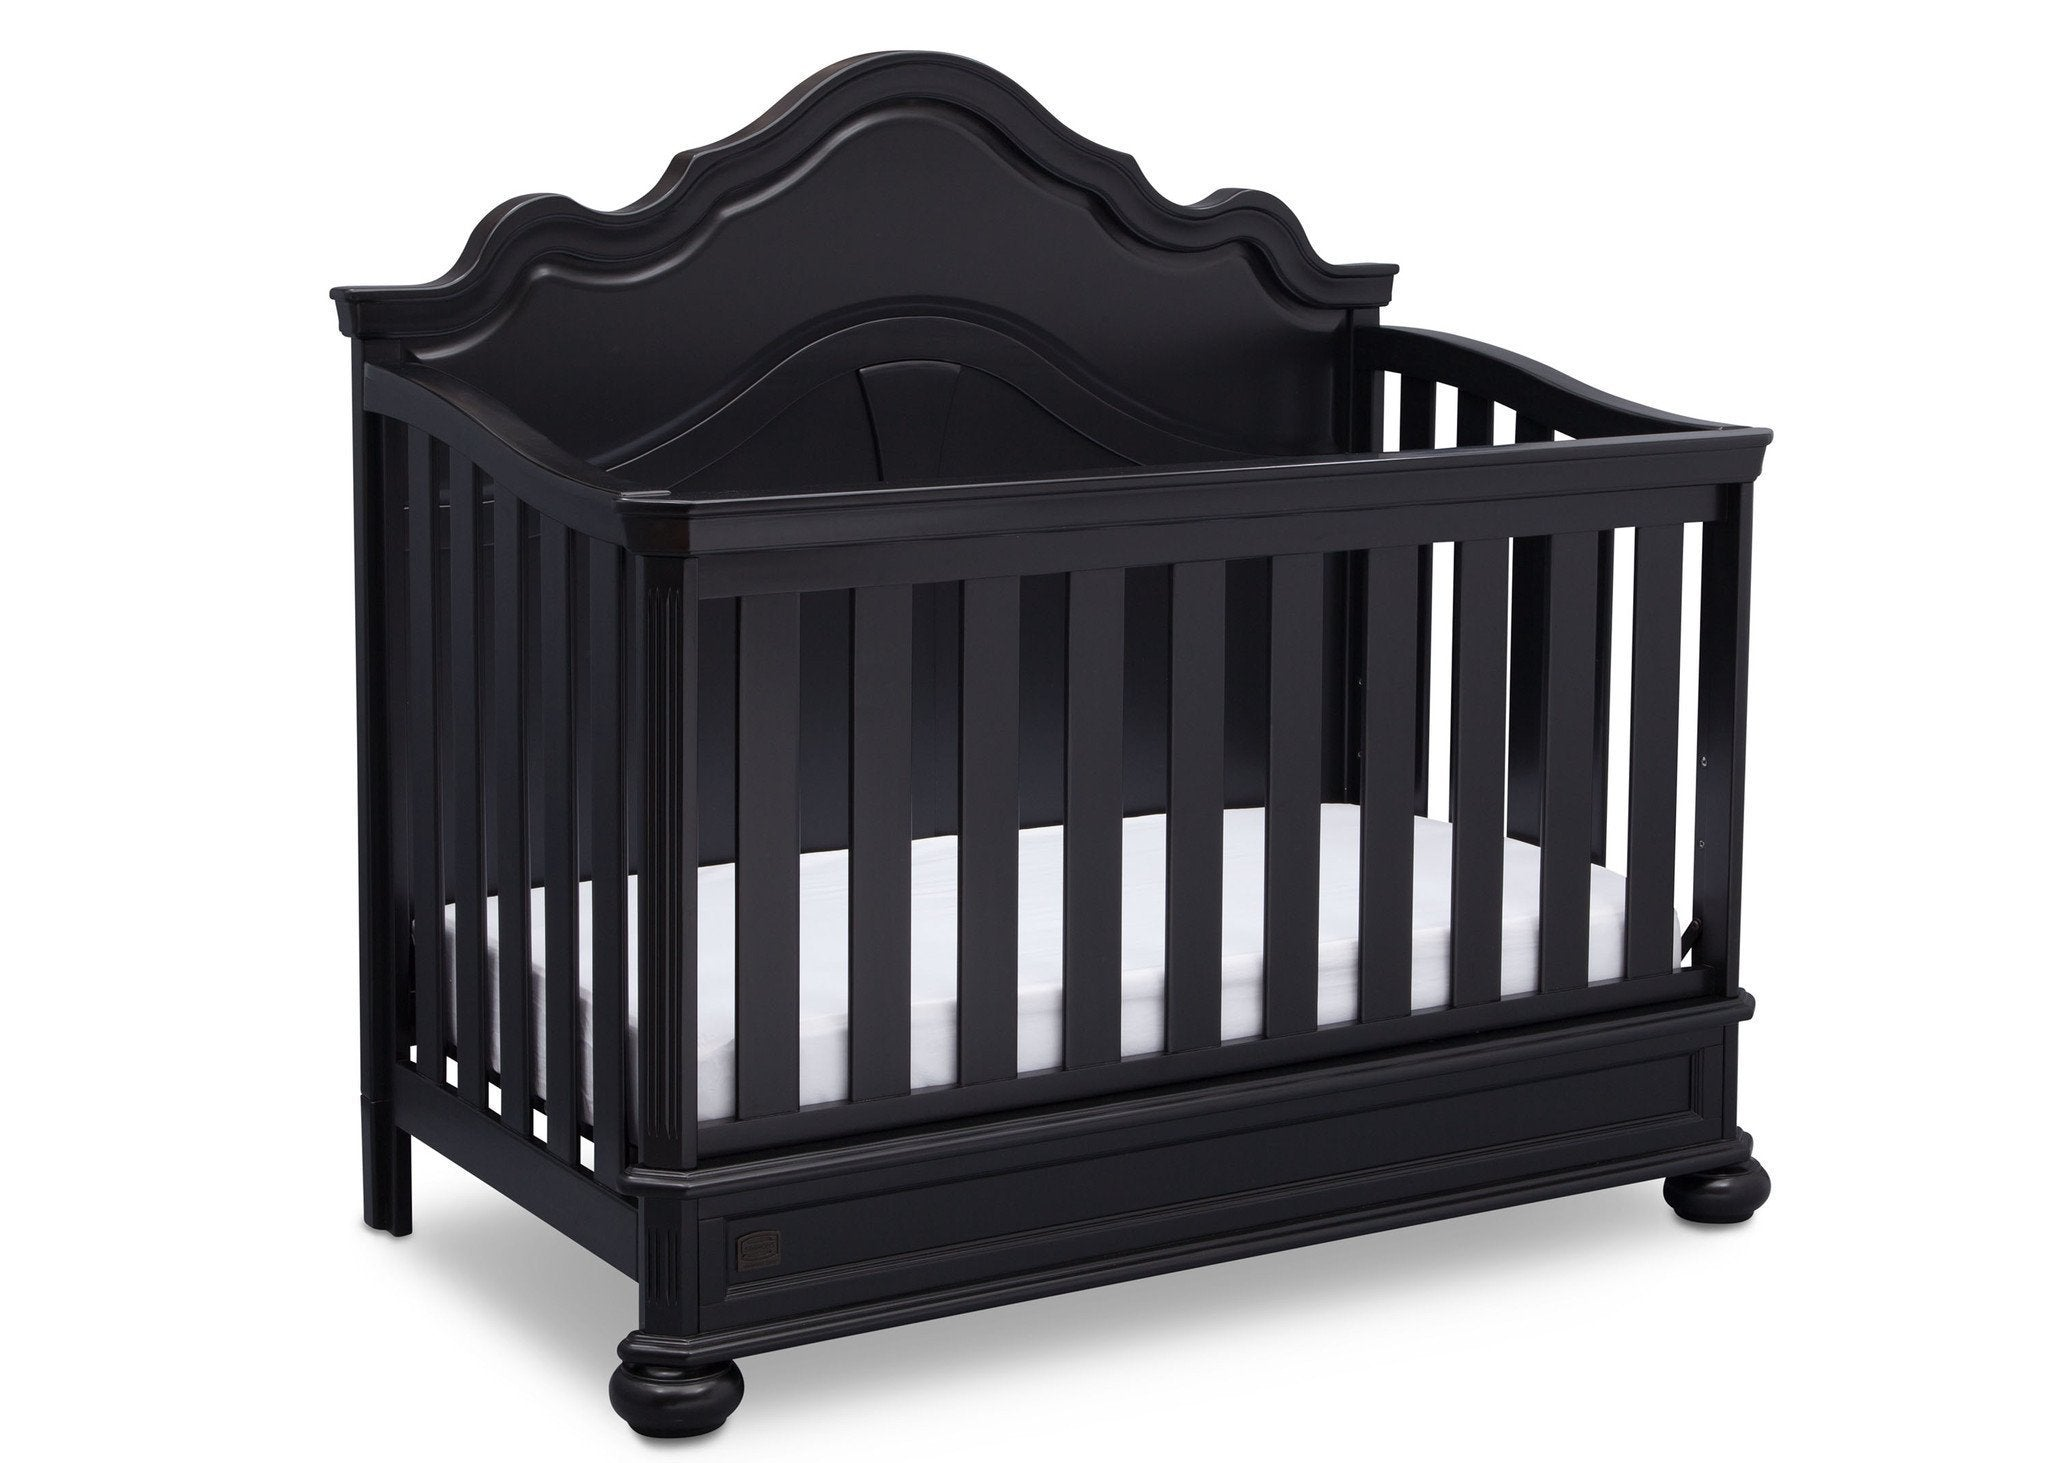 Simmons Kids Ebony (0011) Peyton Crib n' more side view b3b